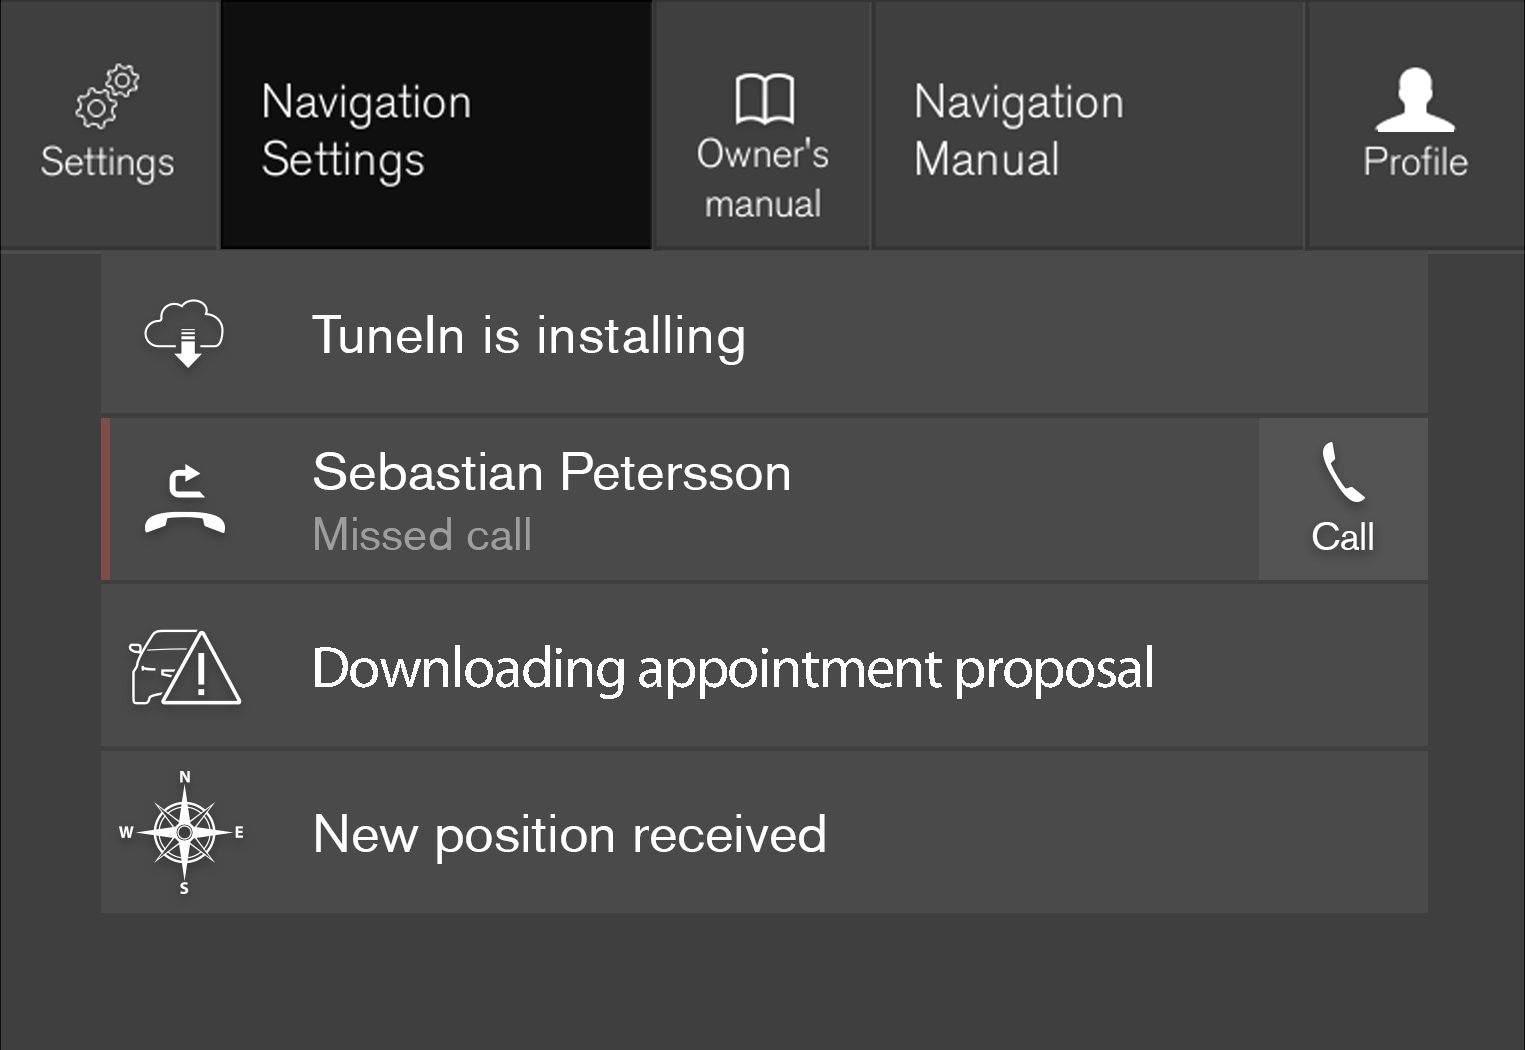 P5-17w46-Navigation settings pane-Contextueal higlighted